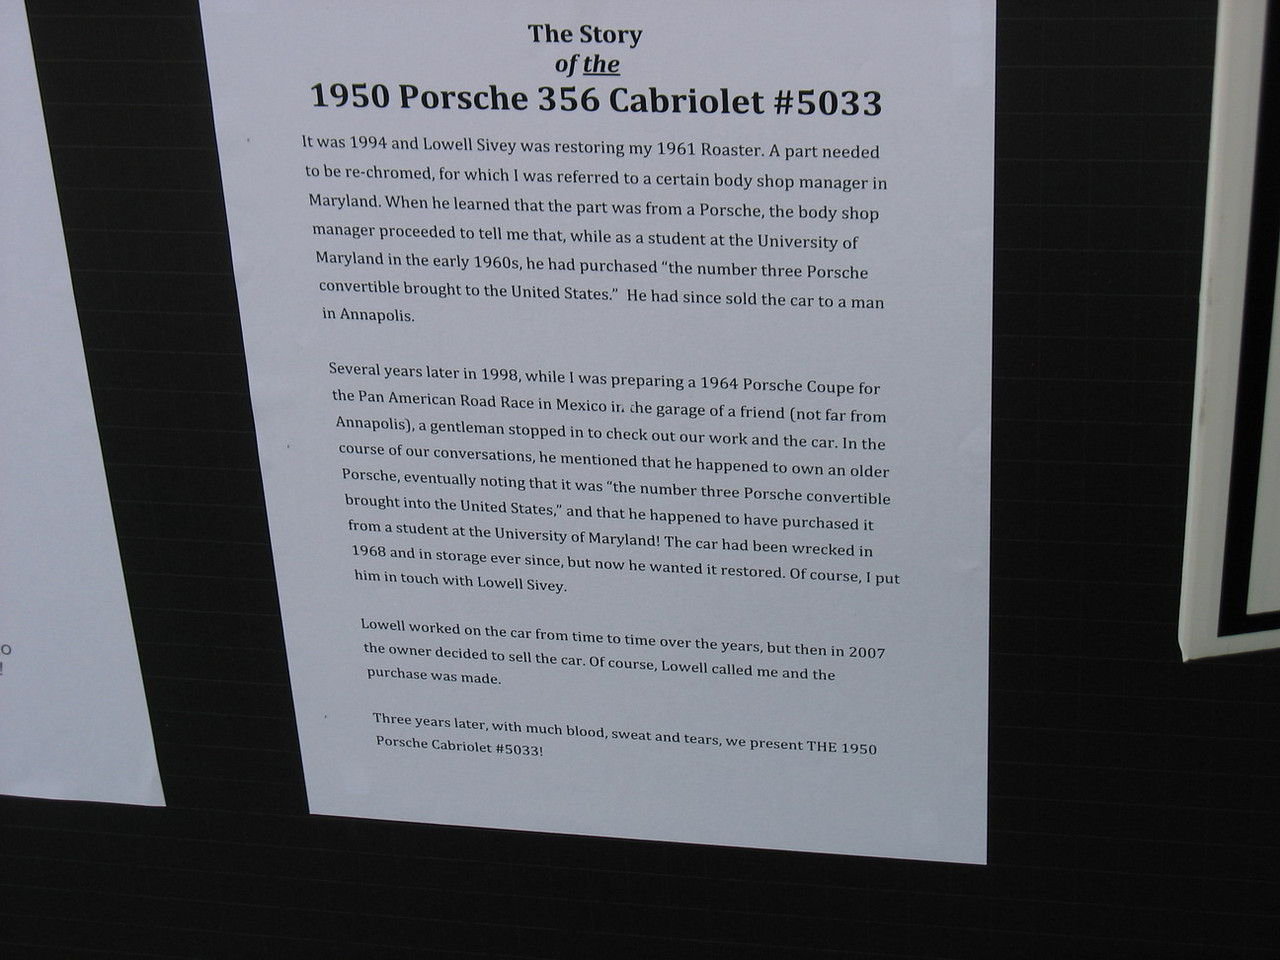 The story of a pre-A Cabriolet